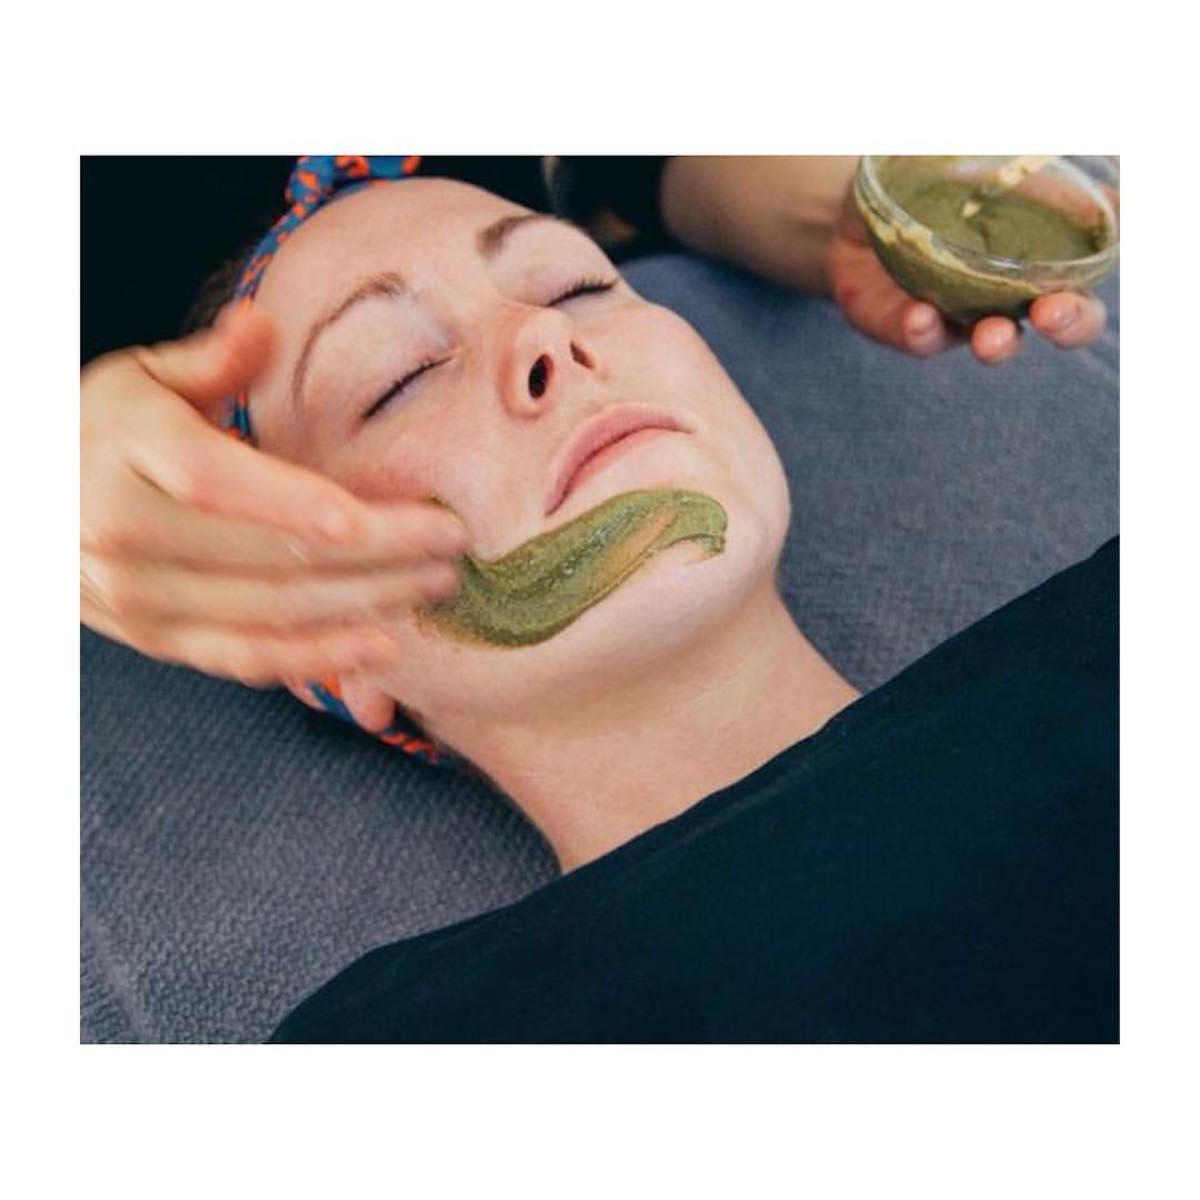 Woman getting a facial using Province Apothecary products